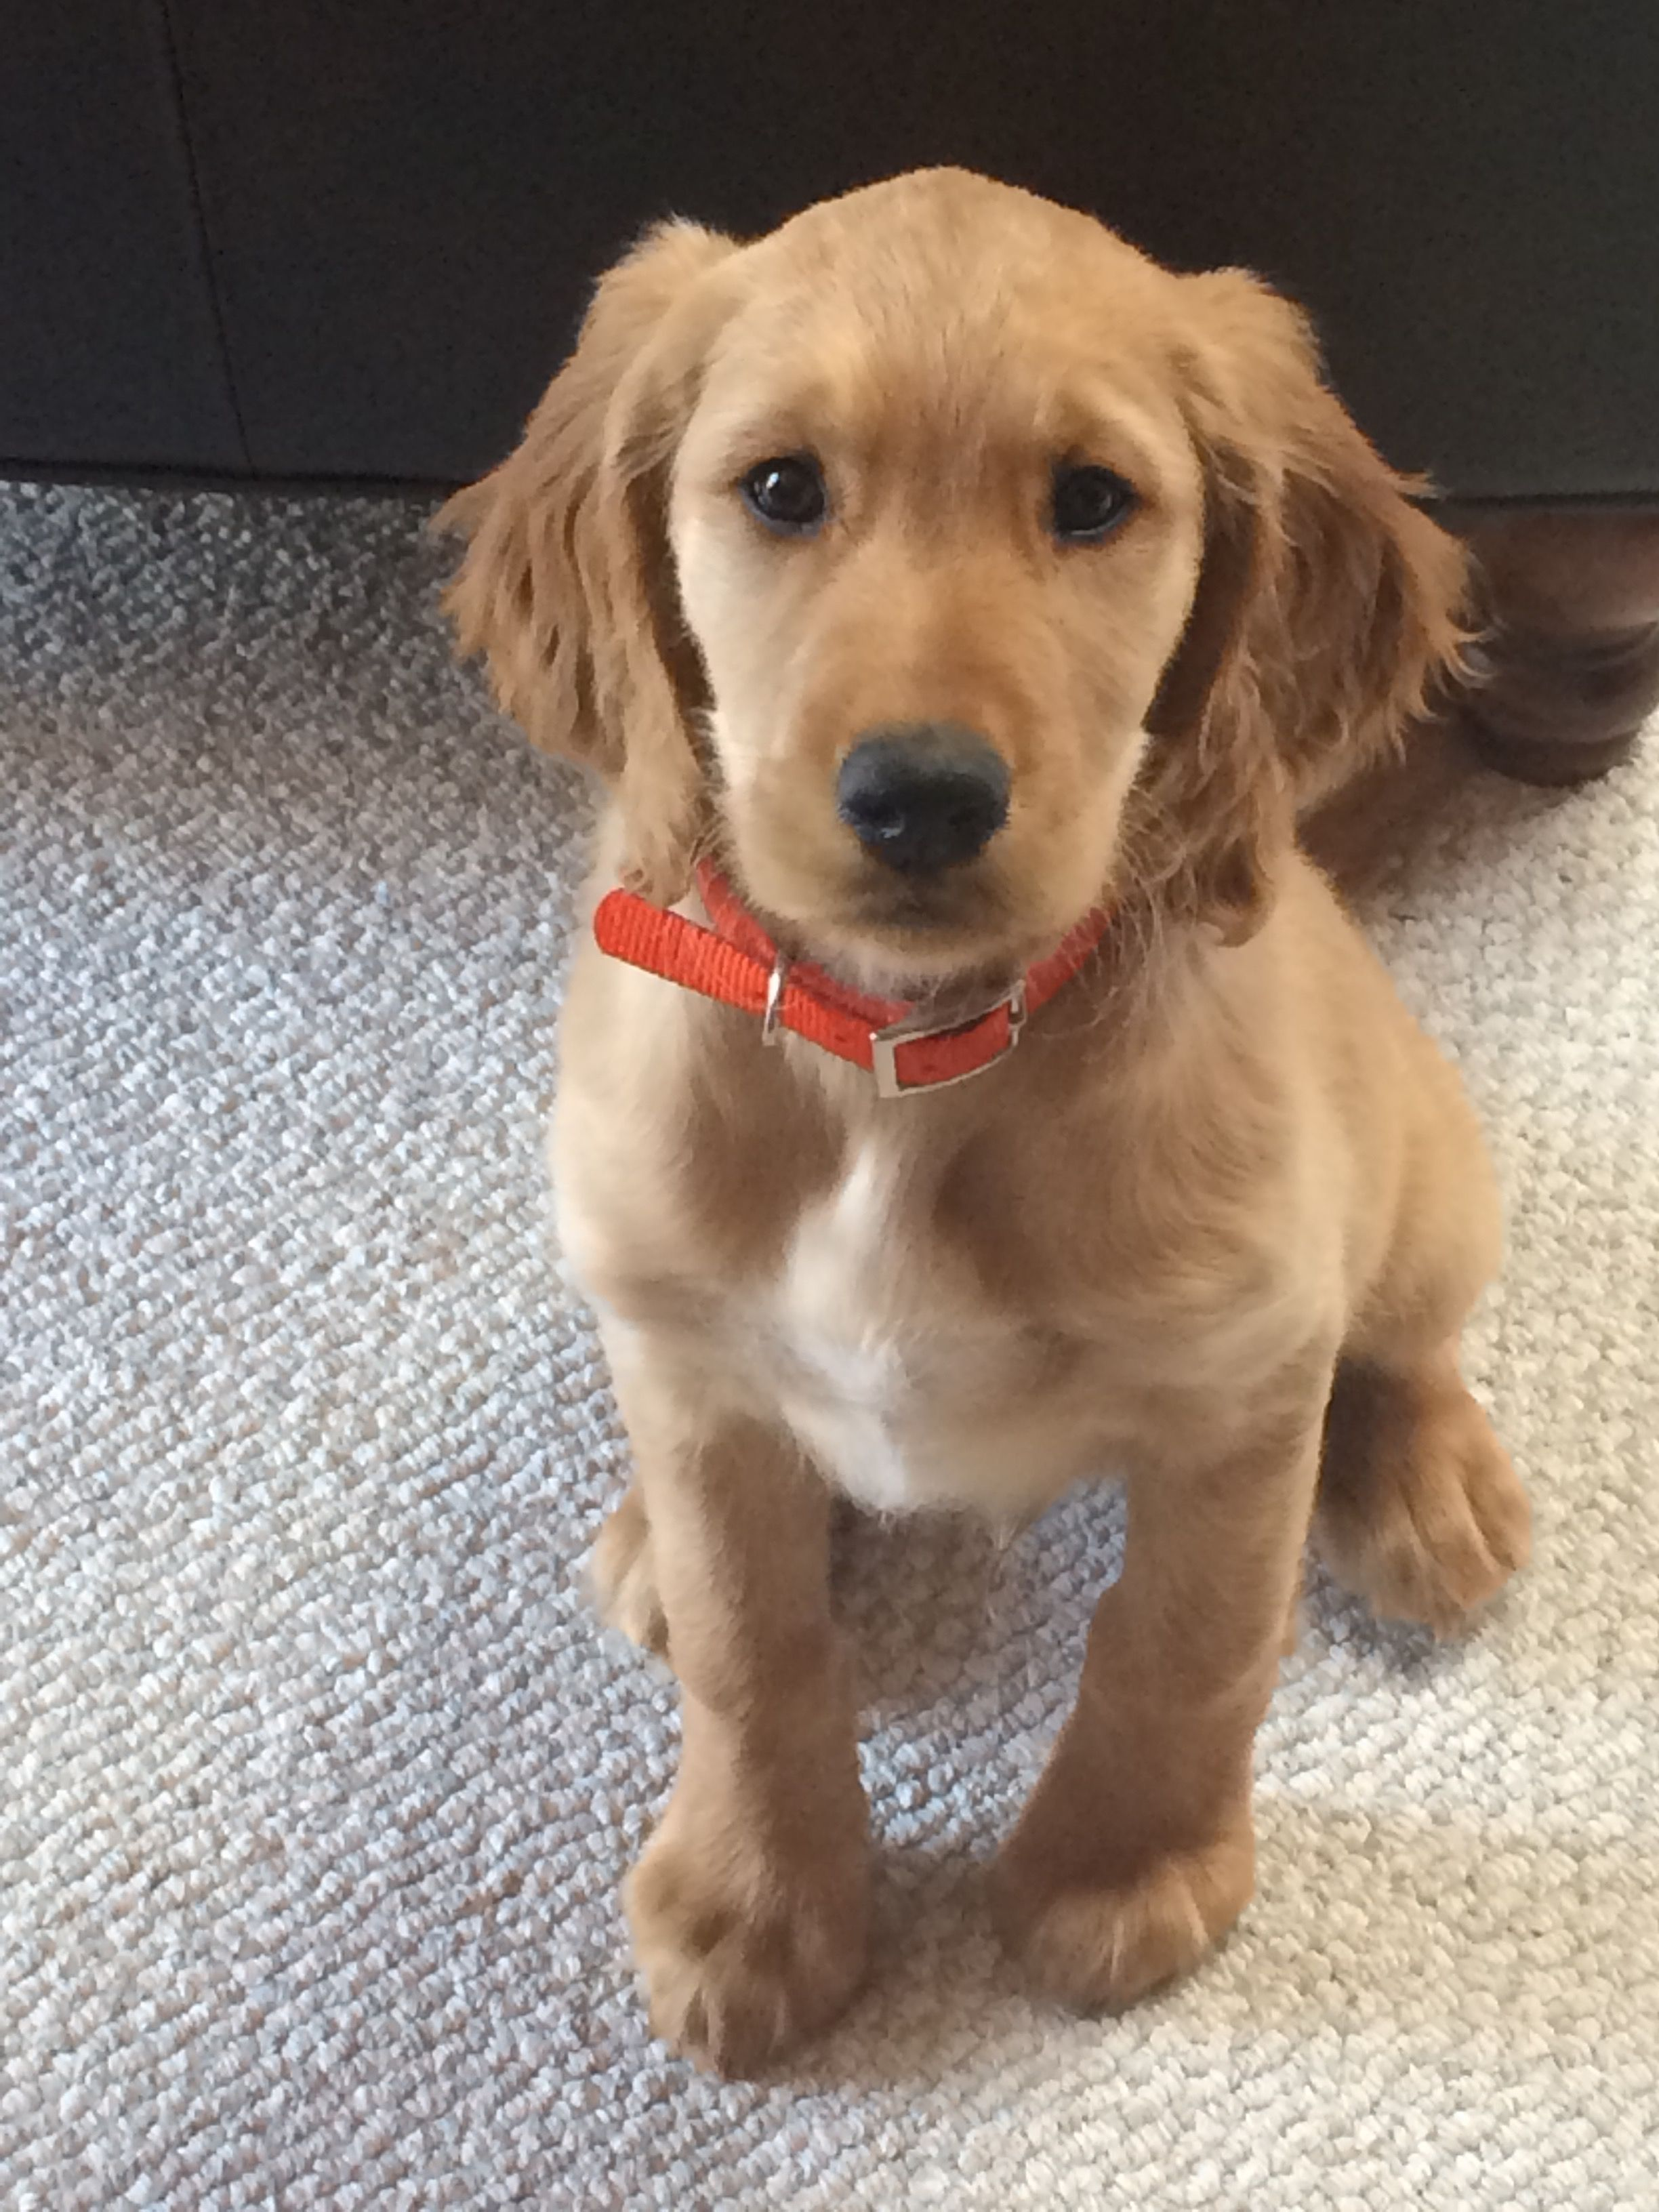 Our 5 Week Old Hooper Irish Setter Golden Retriever Puppy